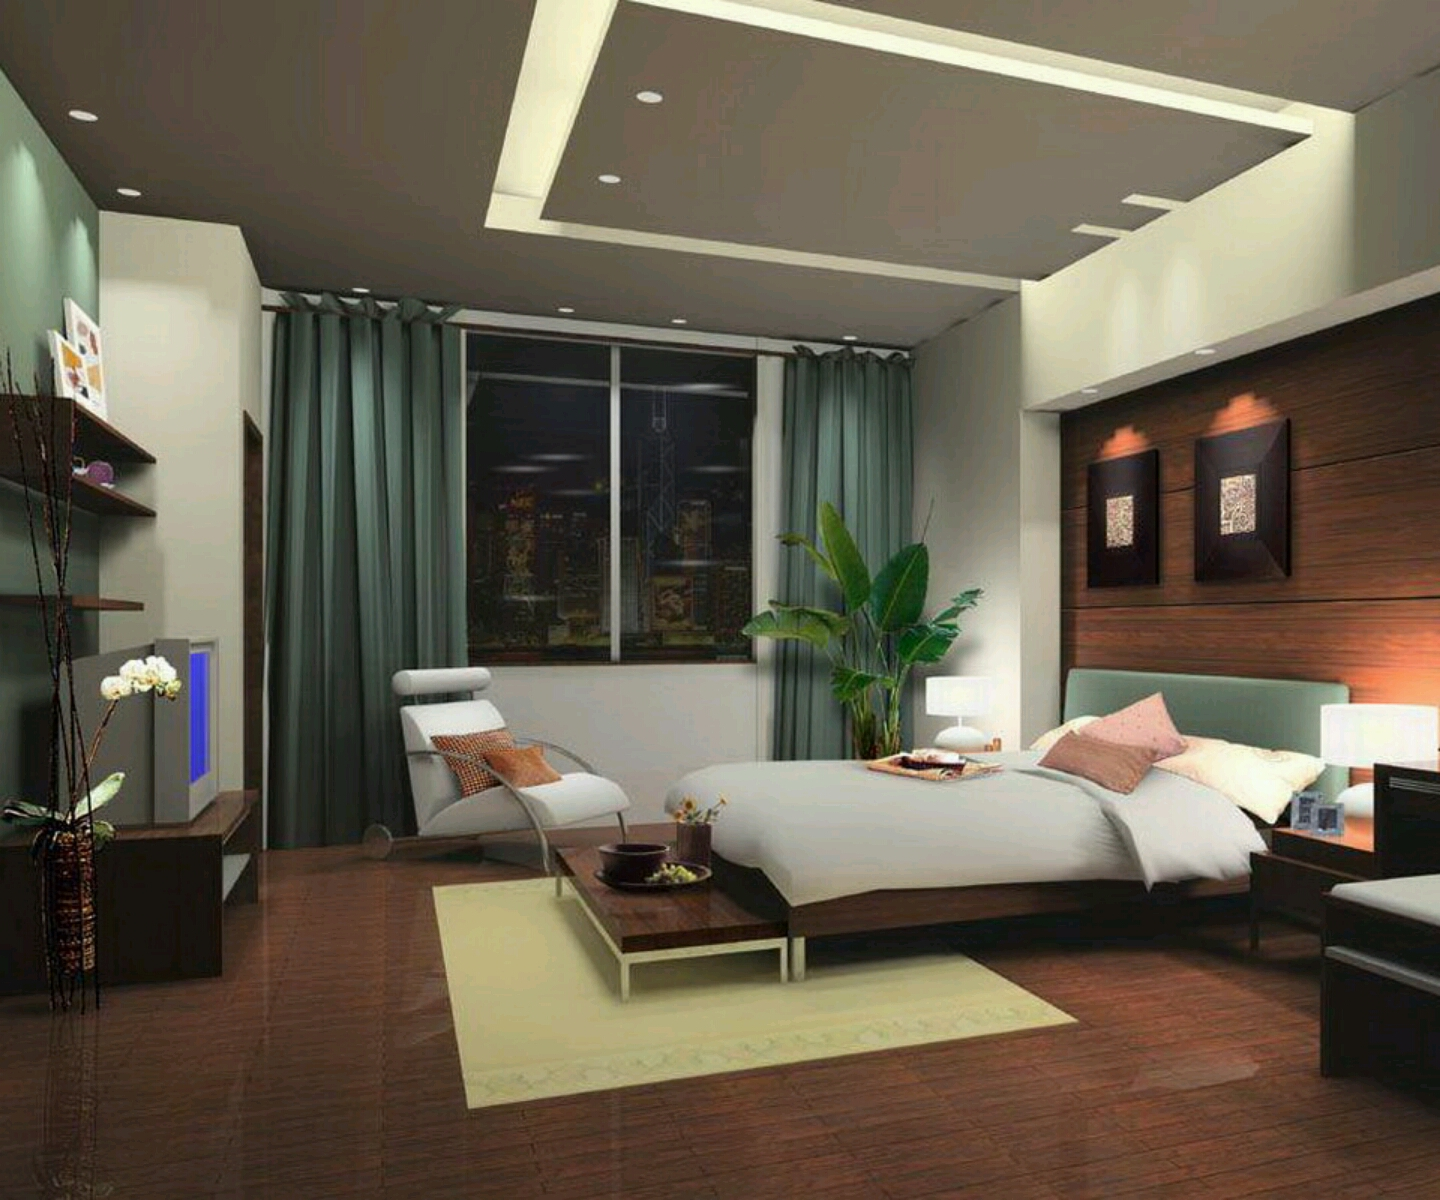 New home designs latest modern bedrooms designs best ideas for Modern furniture ideas